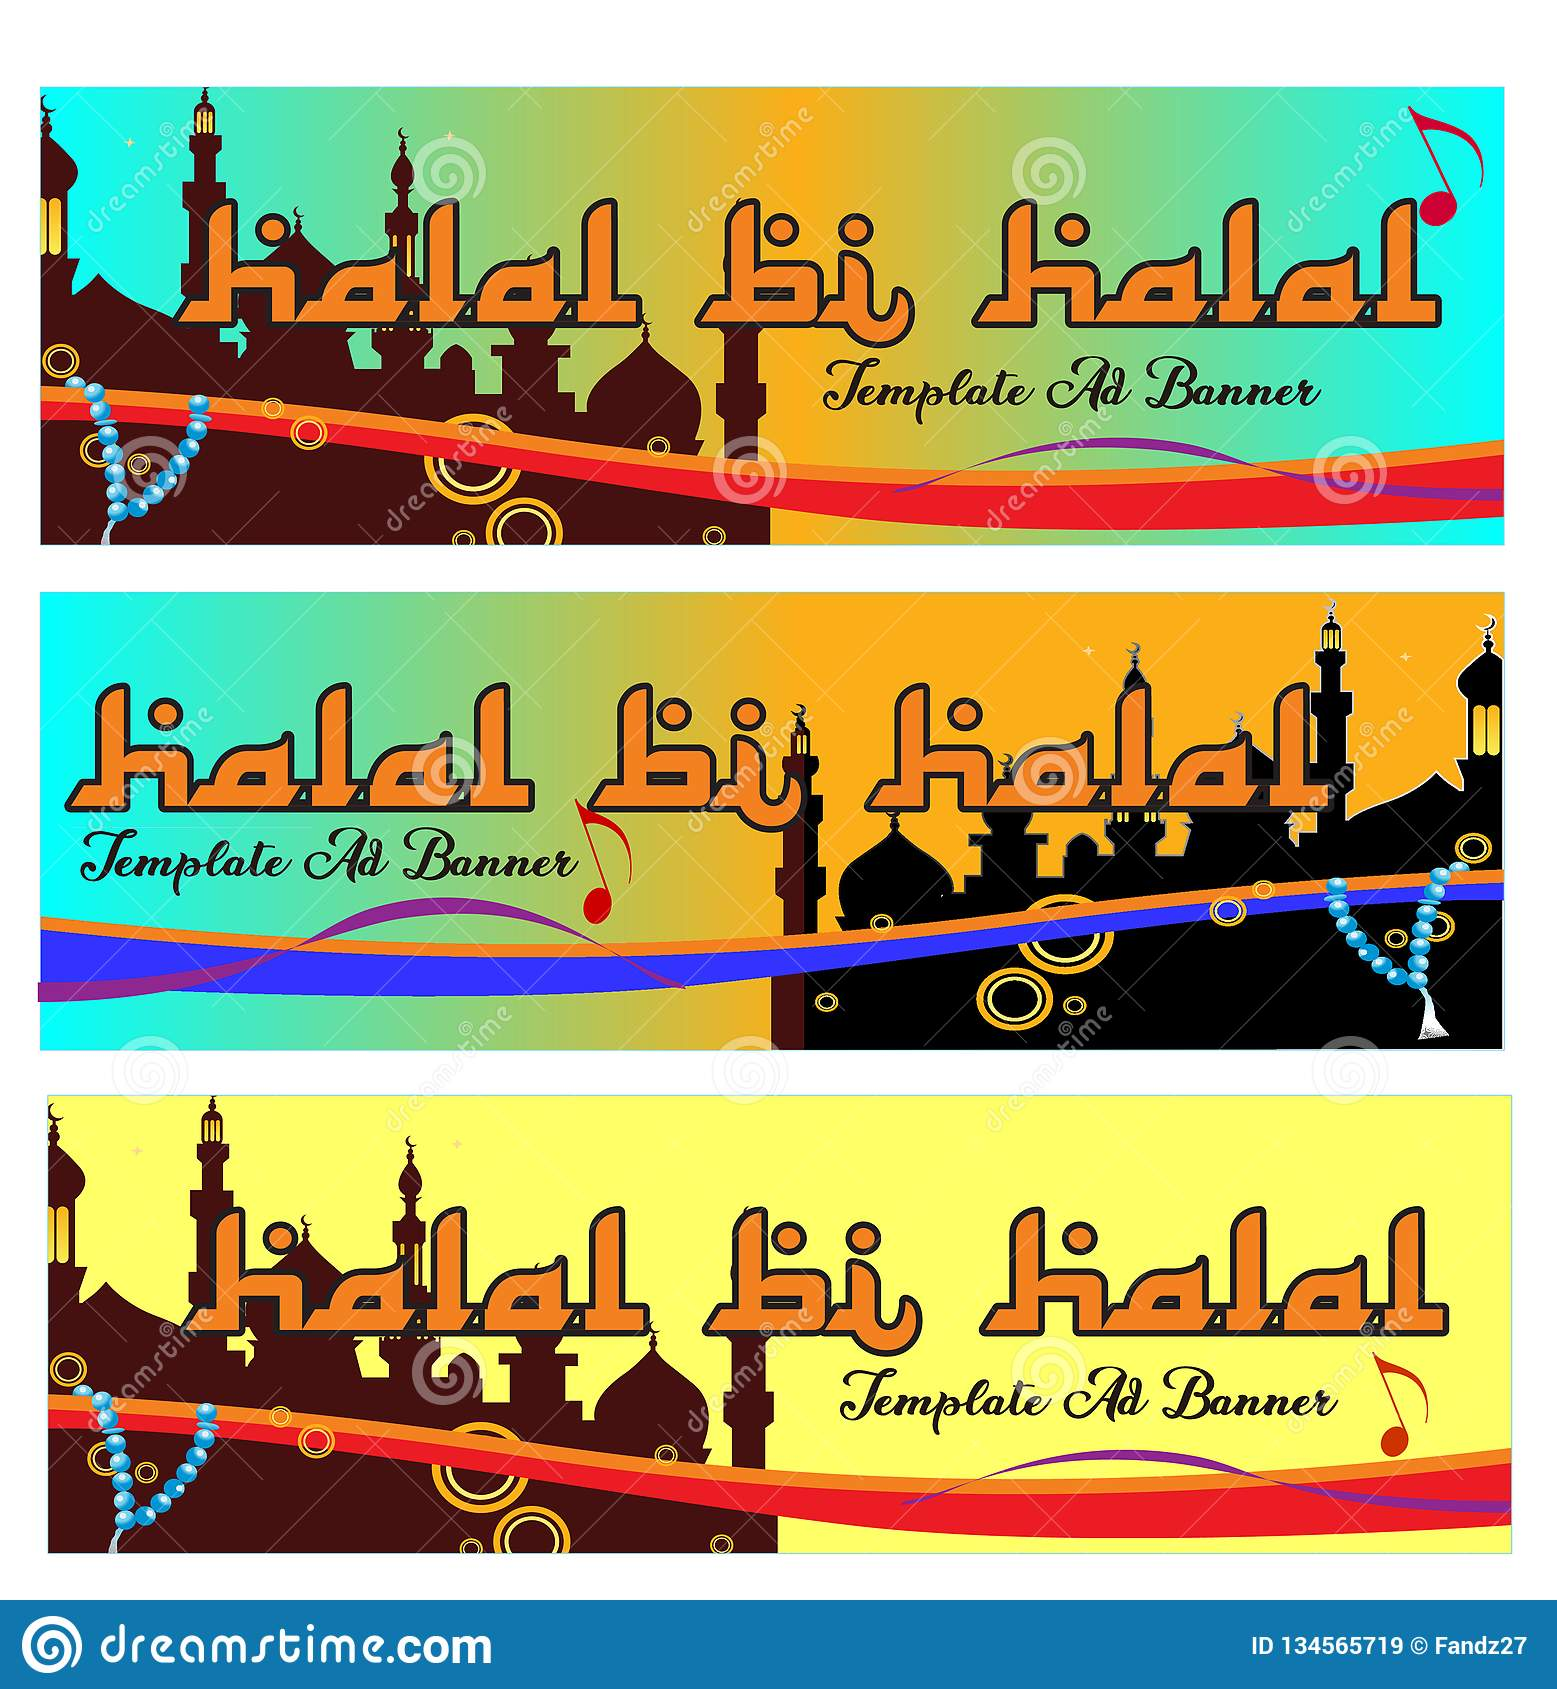 Islamic Bihalal Halal Banner Template Stock Vector Illustration Of